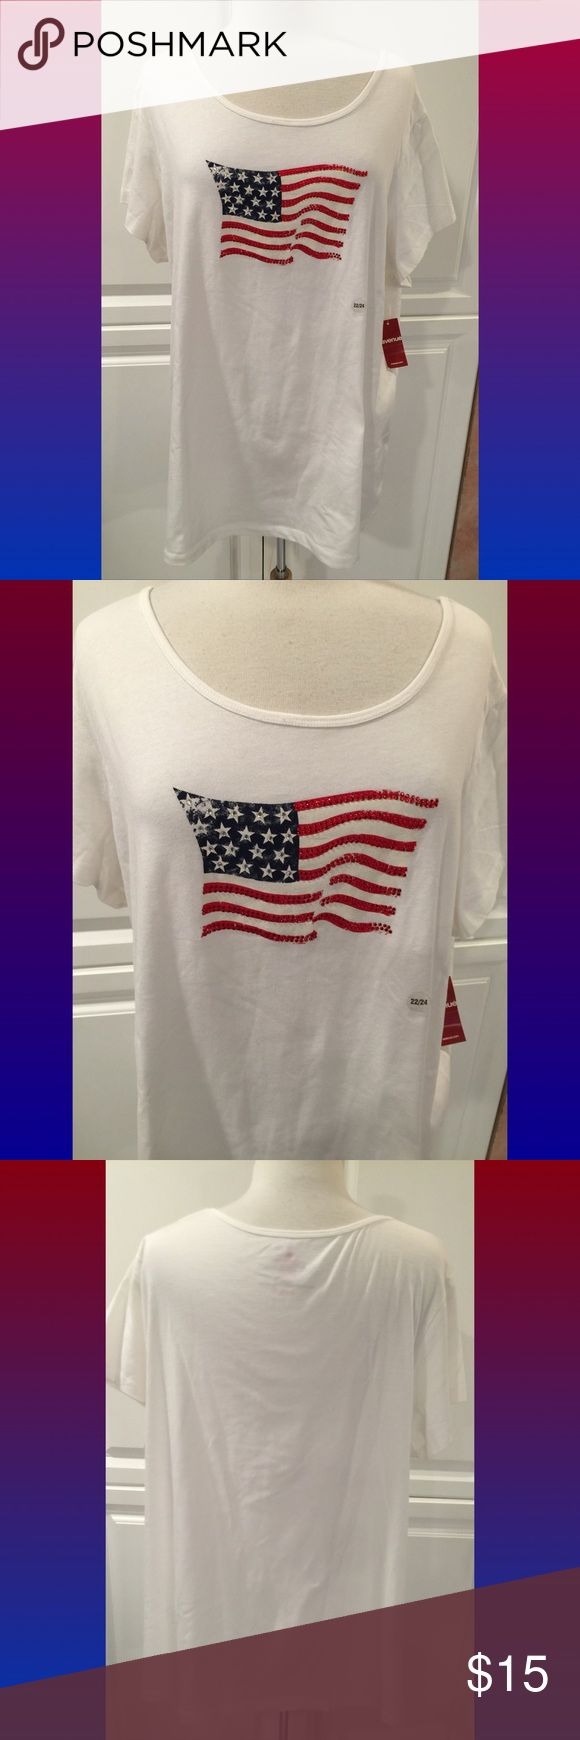 Avenue 'Americana' Short sleeved shirt with American flag on the front & plain back.  Never worn. Tag reads 22/24.  Firm. Avenue Tops Tees - Short Sleeve